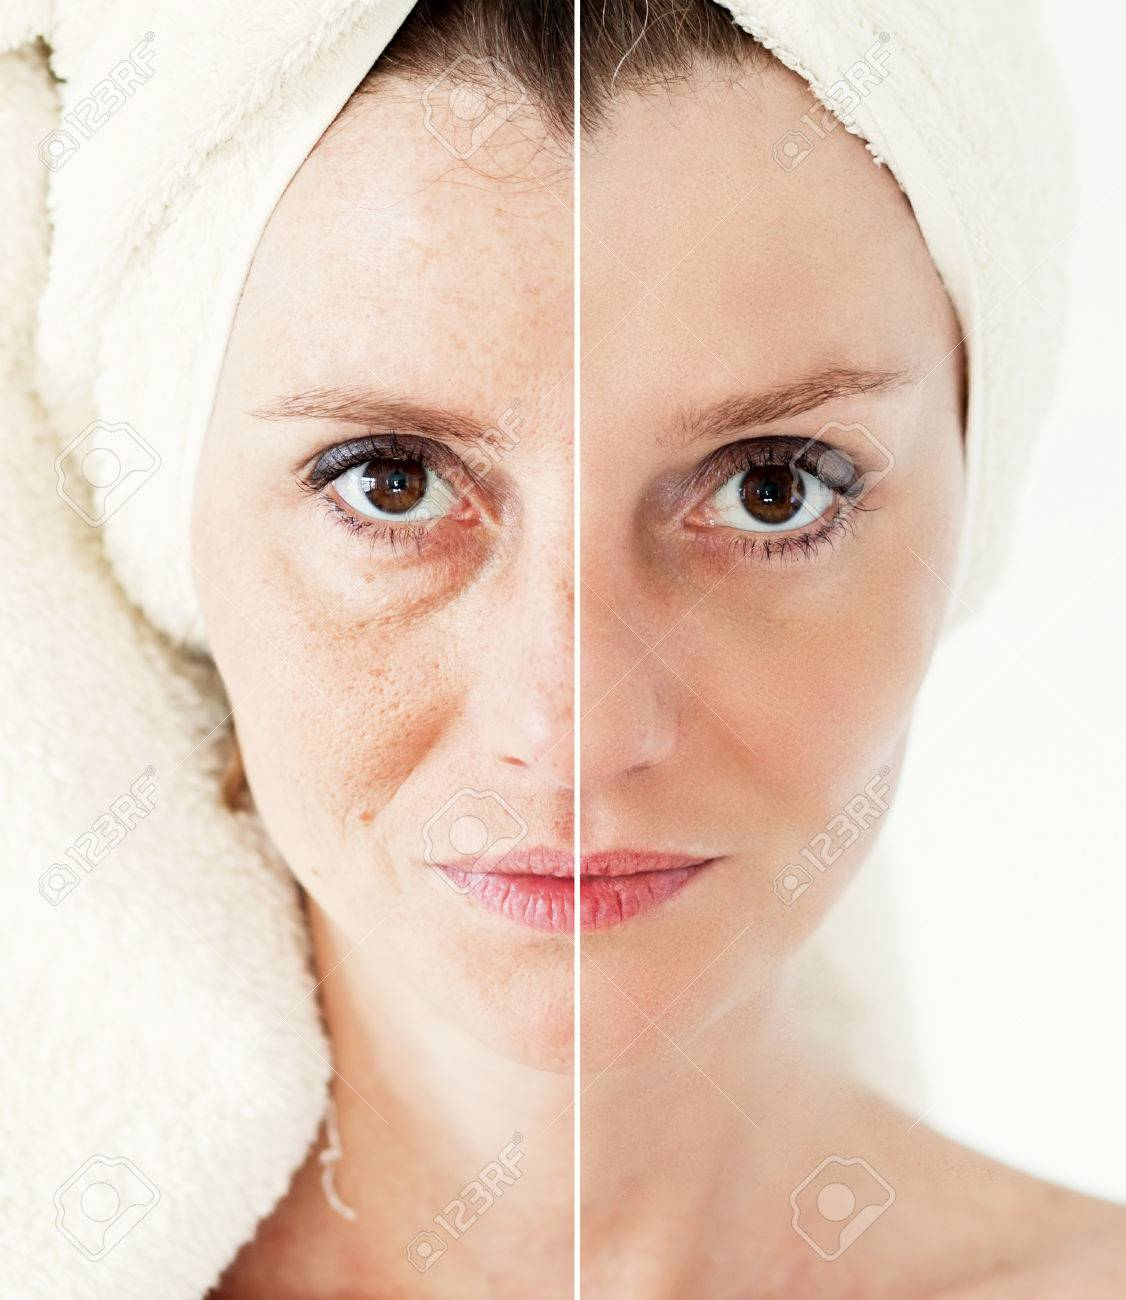 Beauty concept - skin care, anti-aging procedures, rejuvenation, lifting, tightening of facial skin - 39761836